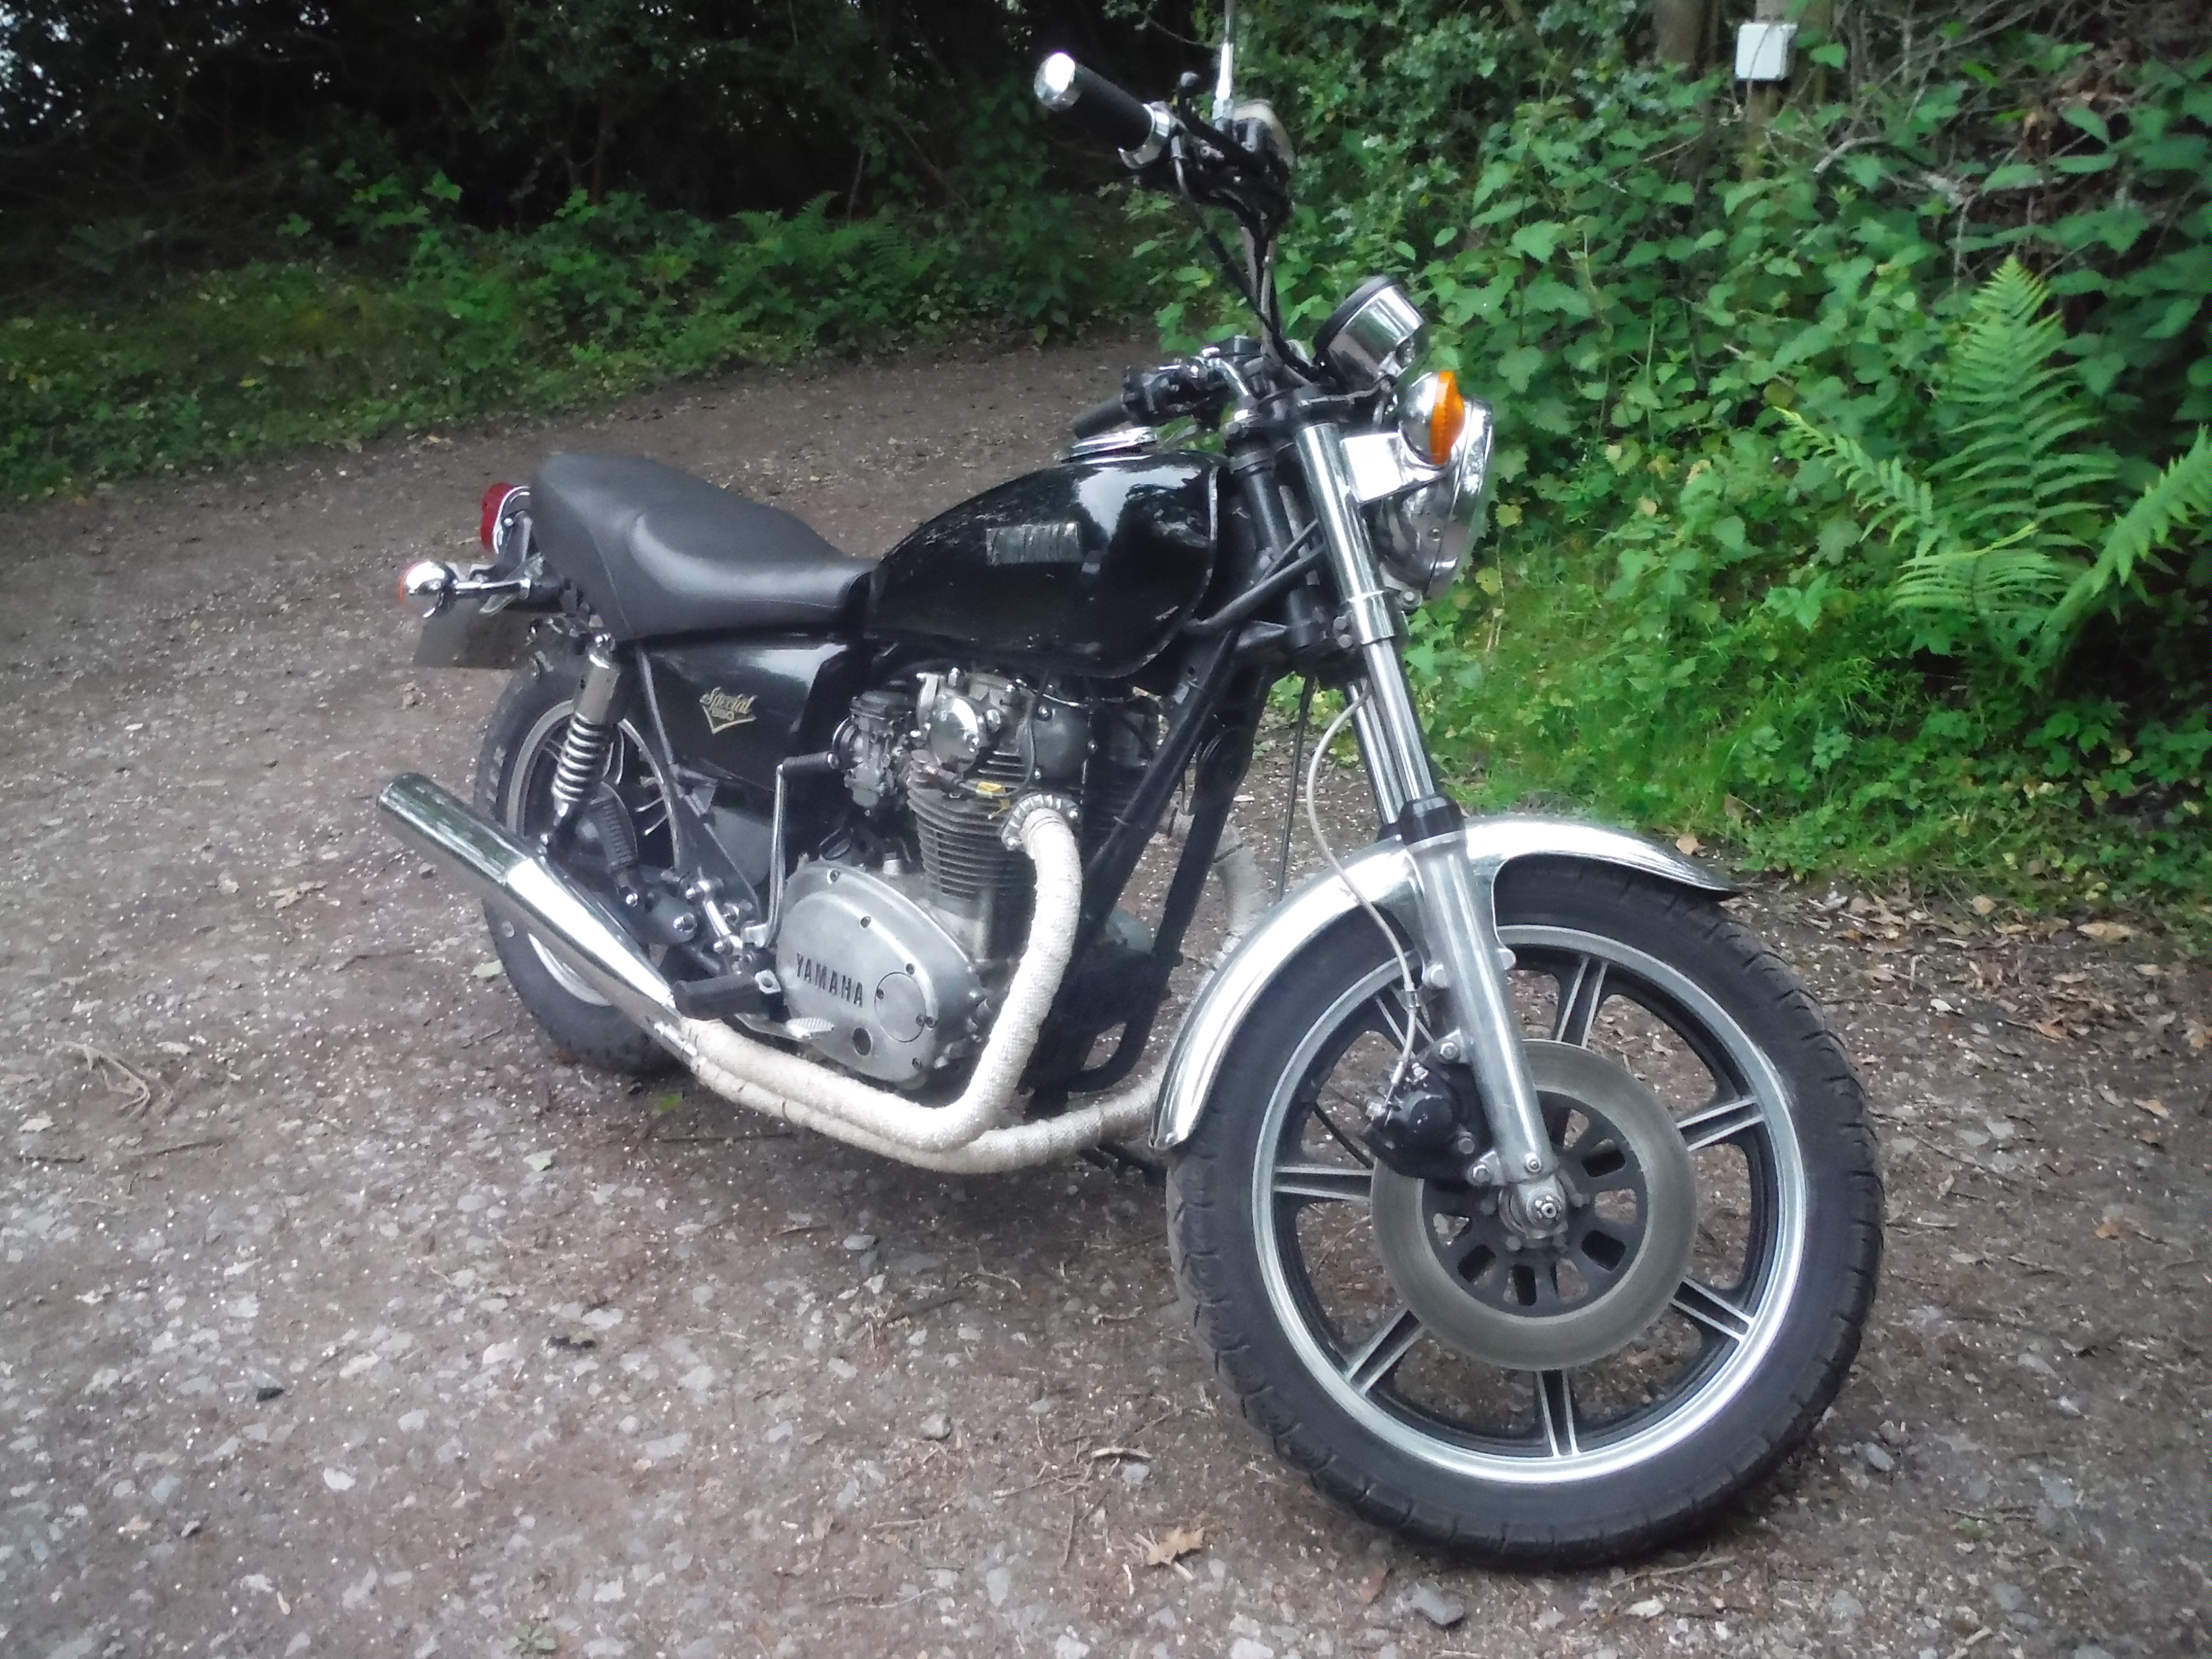 Yamaha Xs650 Fuse Box Location Electrical Wiring Diagrams Xs1100 Beyond The Fusebox M A Thomas Xs400 My Special With Rebuilt Engine And